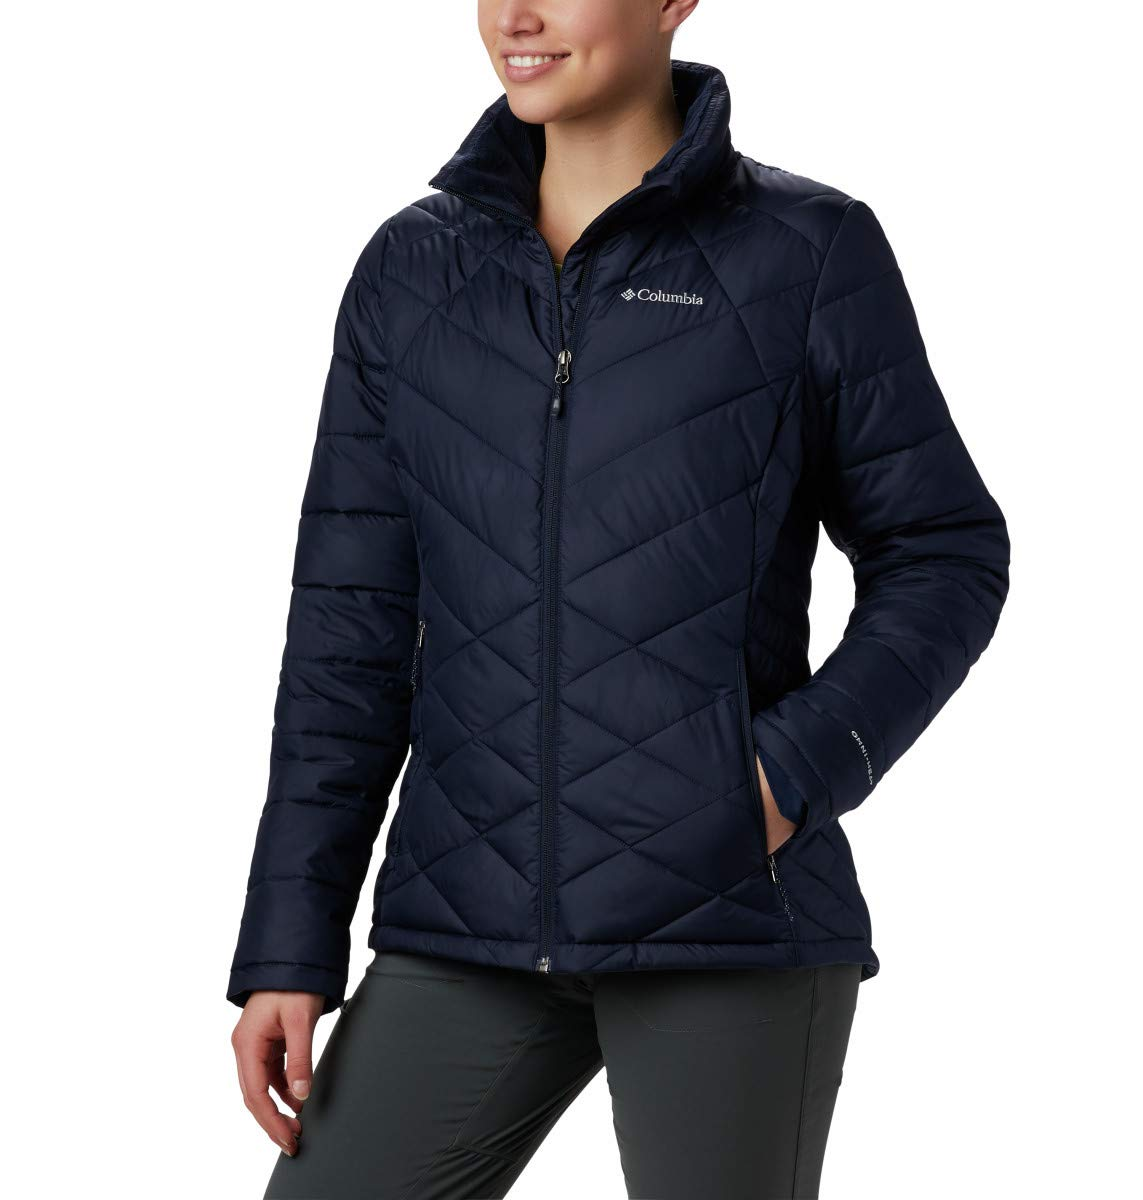 Columbia Women's Heavenly Jacket, Dark Nocturnal, Small by Columbia